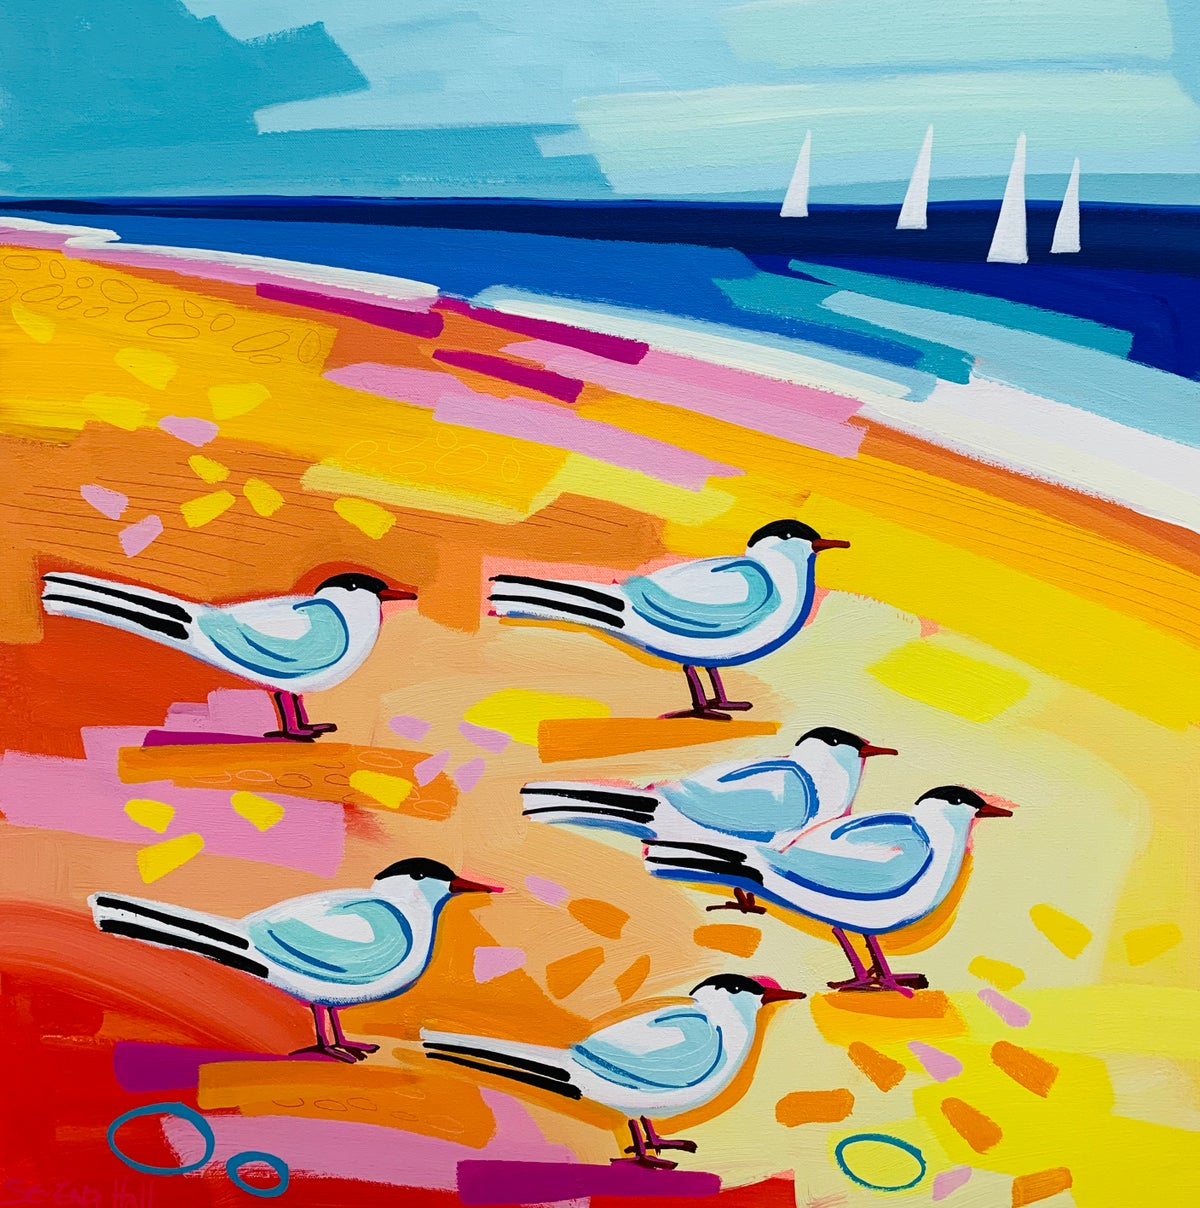 Six Terns resting